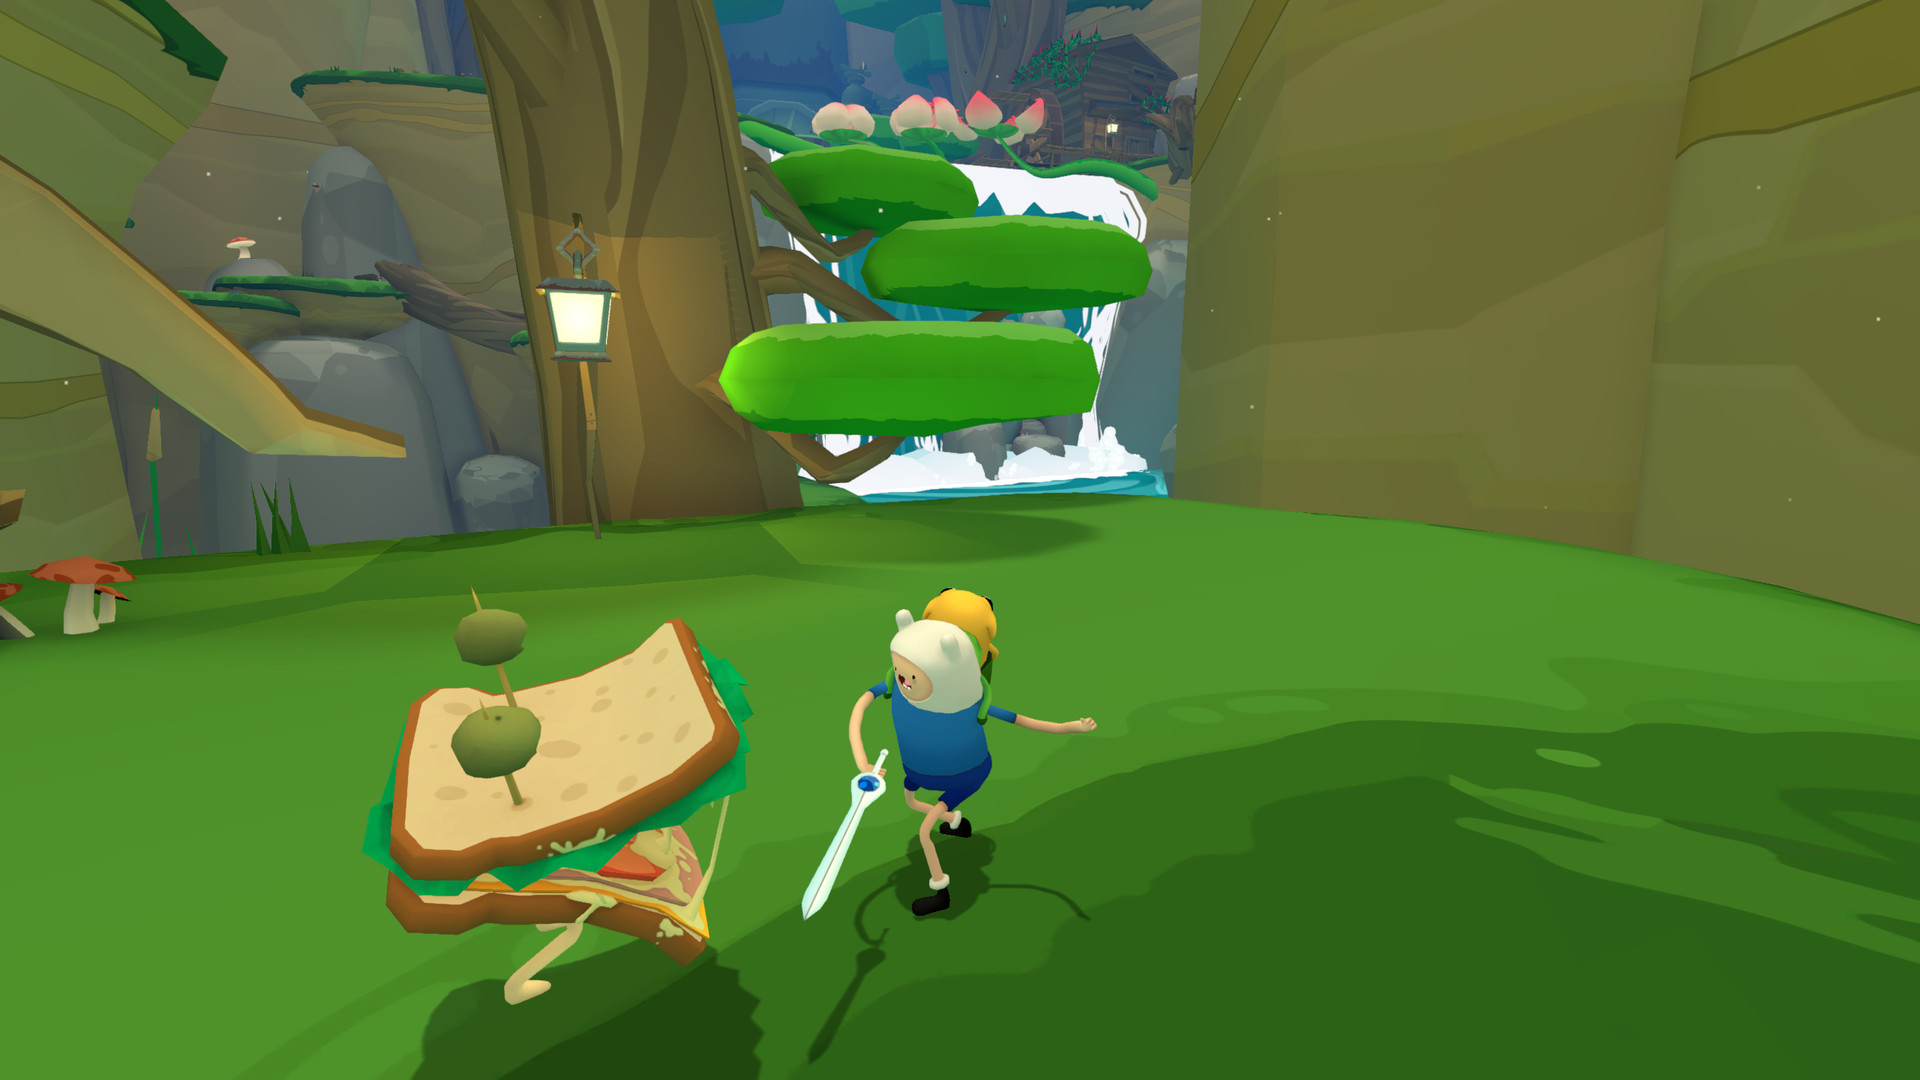 Adventure time: pirates of the enchiridion pc game free download.